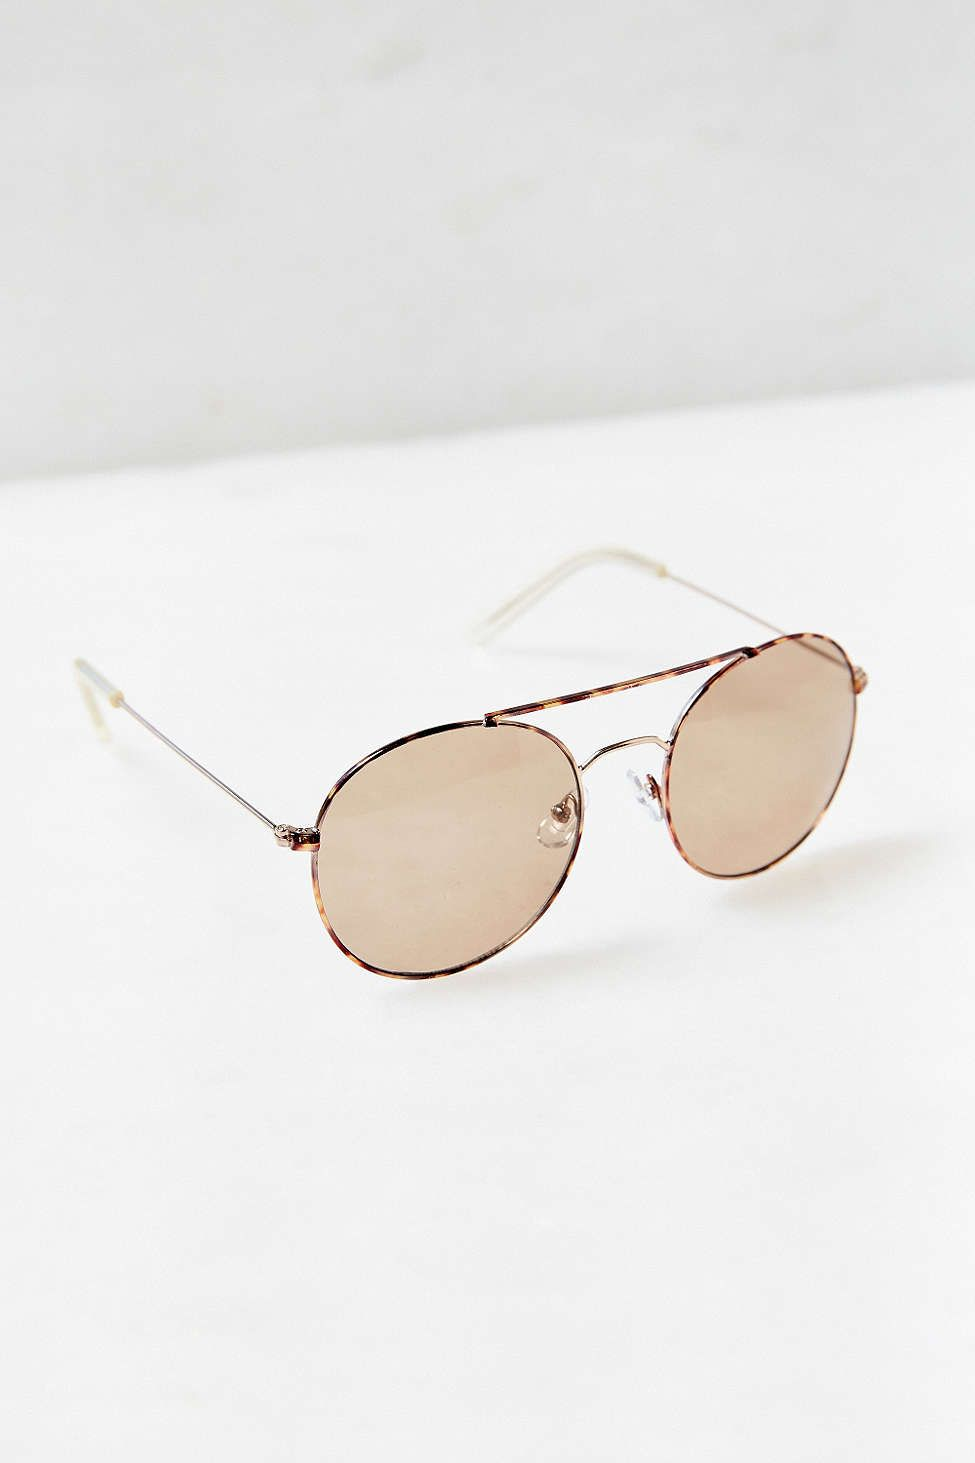 Heritage Rounded Aviator Sunglasses   want   Pinterest   Acessórios 9b55e63c86